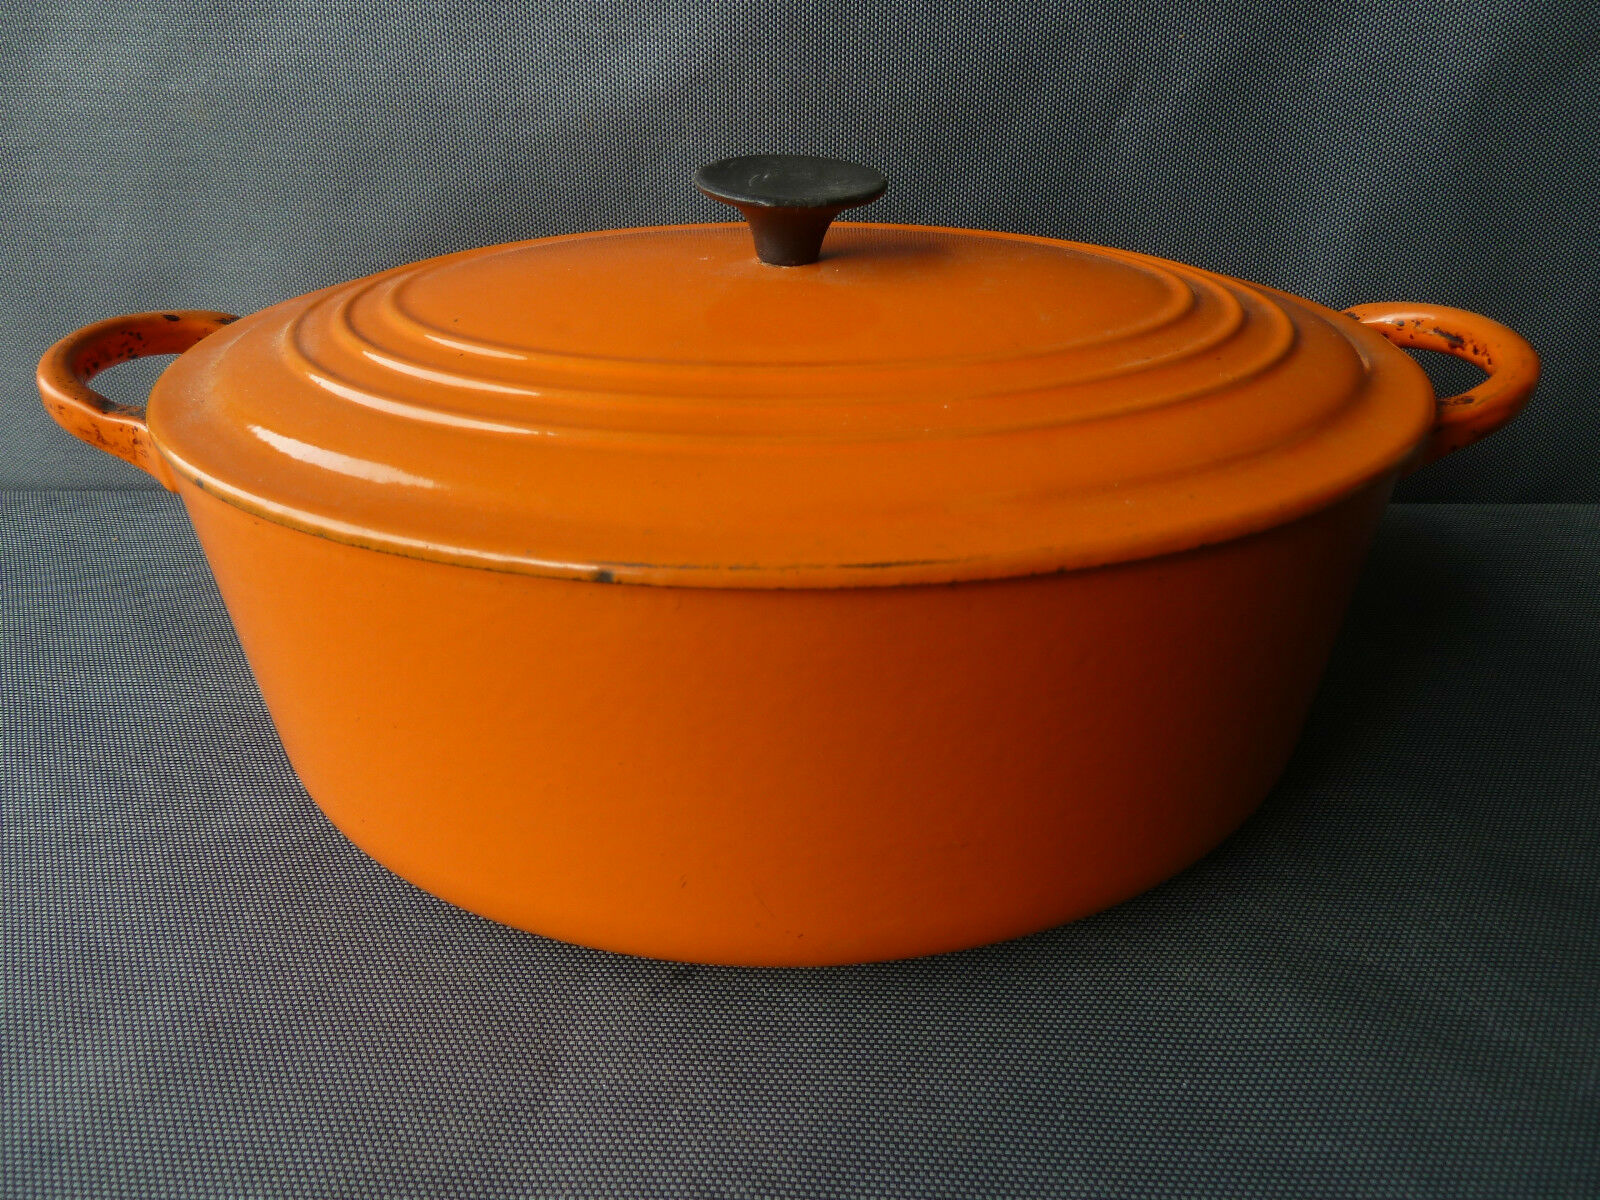 ancienne cocotte en fonte le creuset cuisine vintage orange french antique eur 69 90 picclick fr. Black Bedroom Furniture Sets. Home Design Ideas